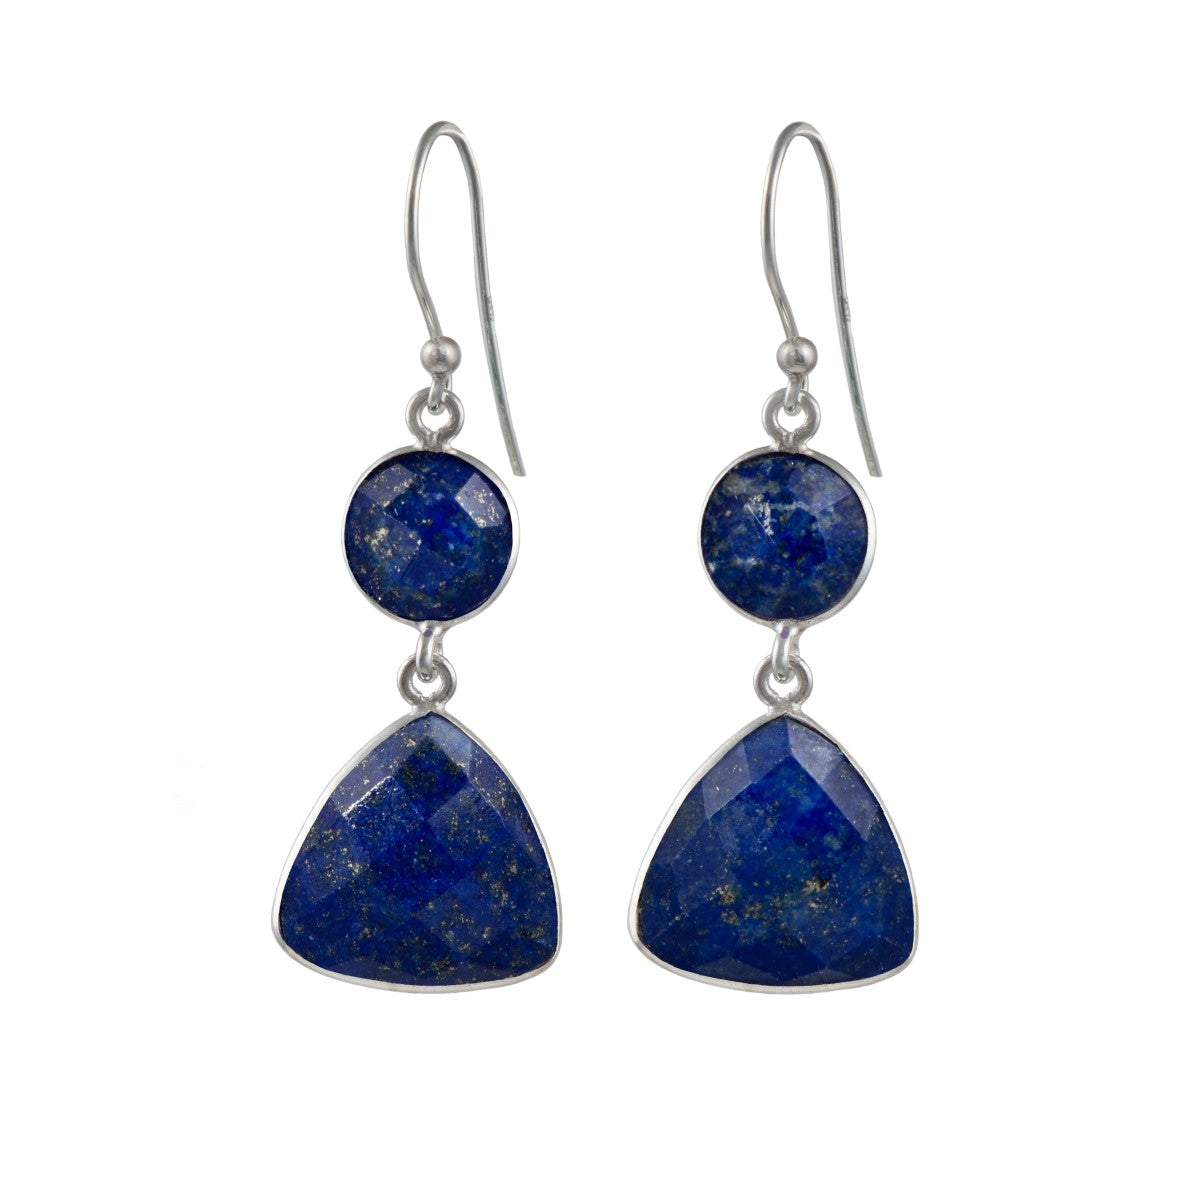 Lapis Lazuli Gemstone Earrings in Sterling Silver - Triangular